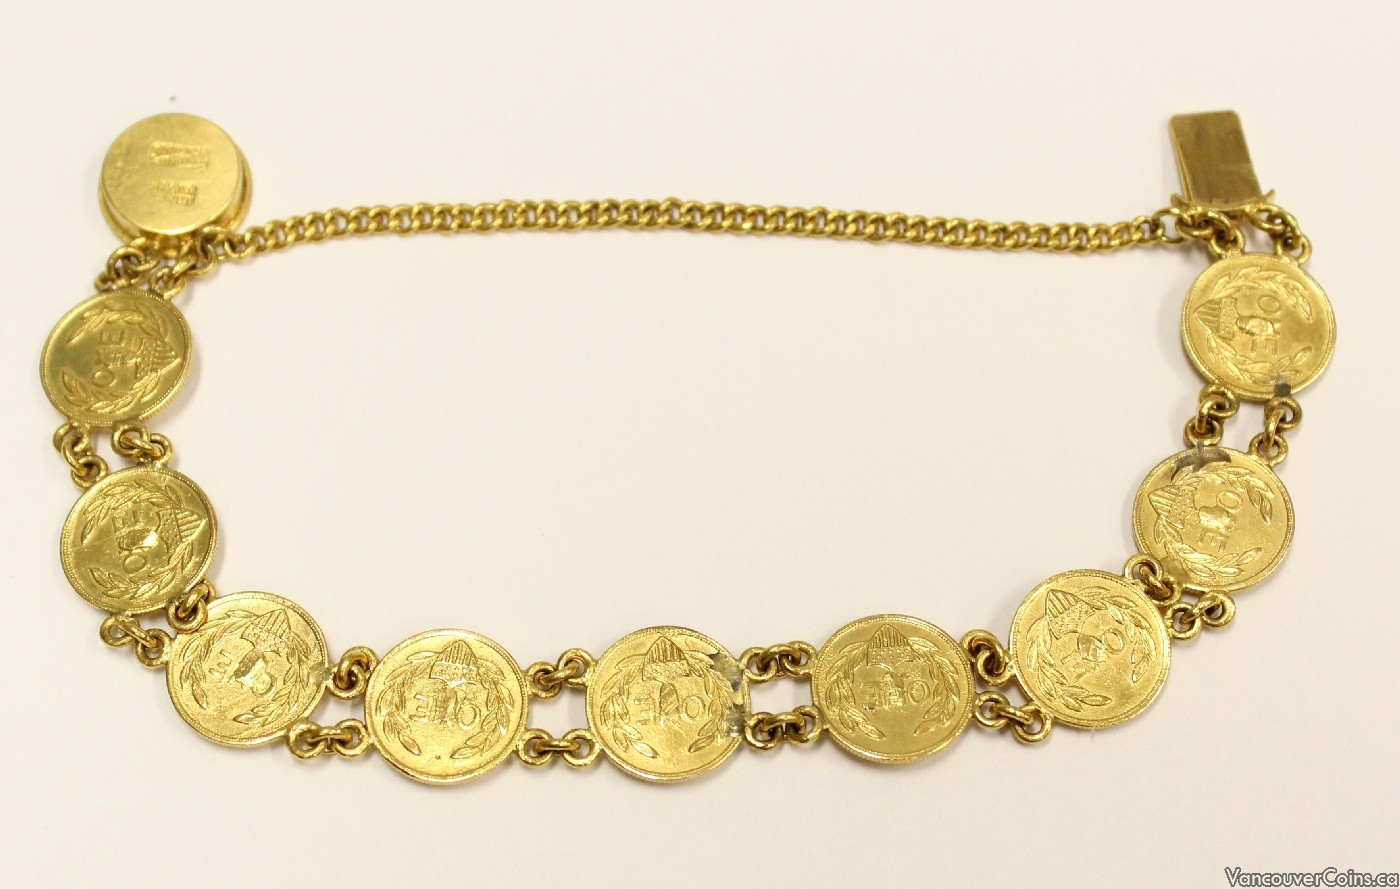 10x 1849 One Dollar Gold tokens Bracelet 22K chains & mounts